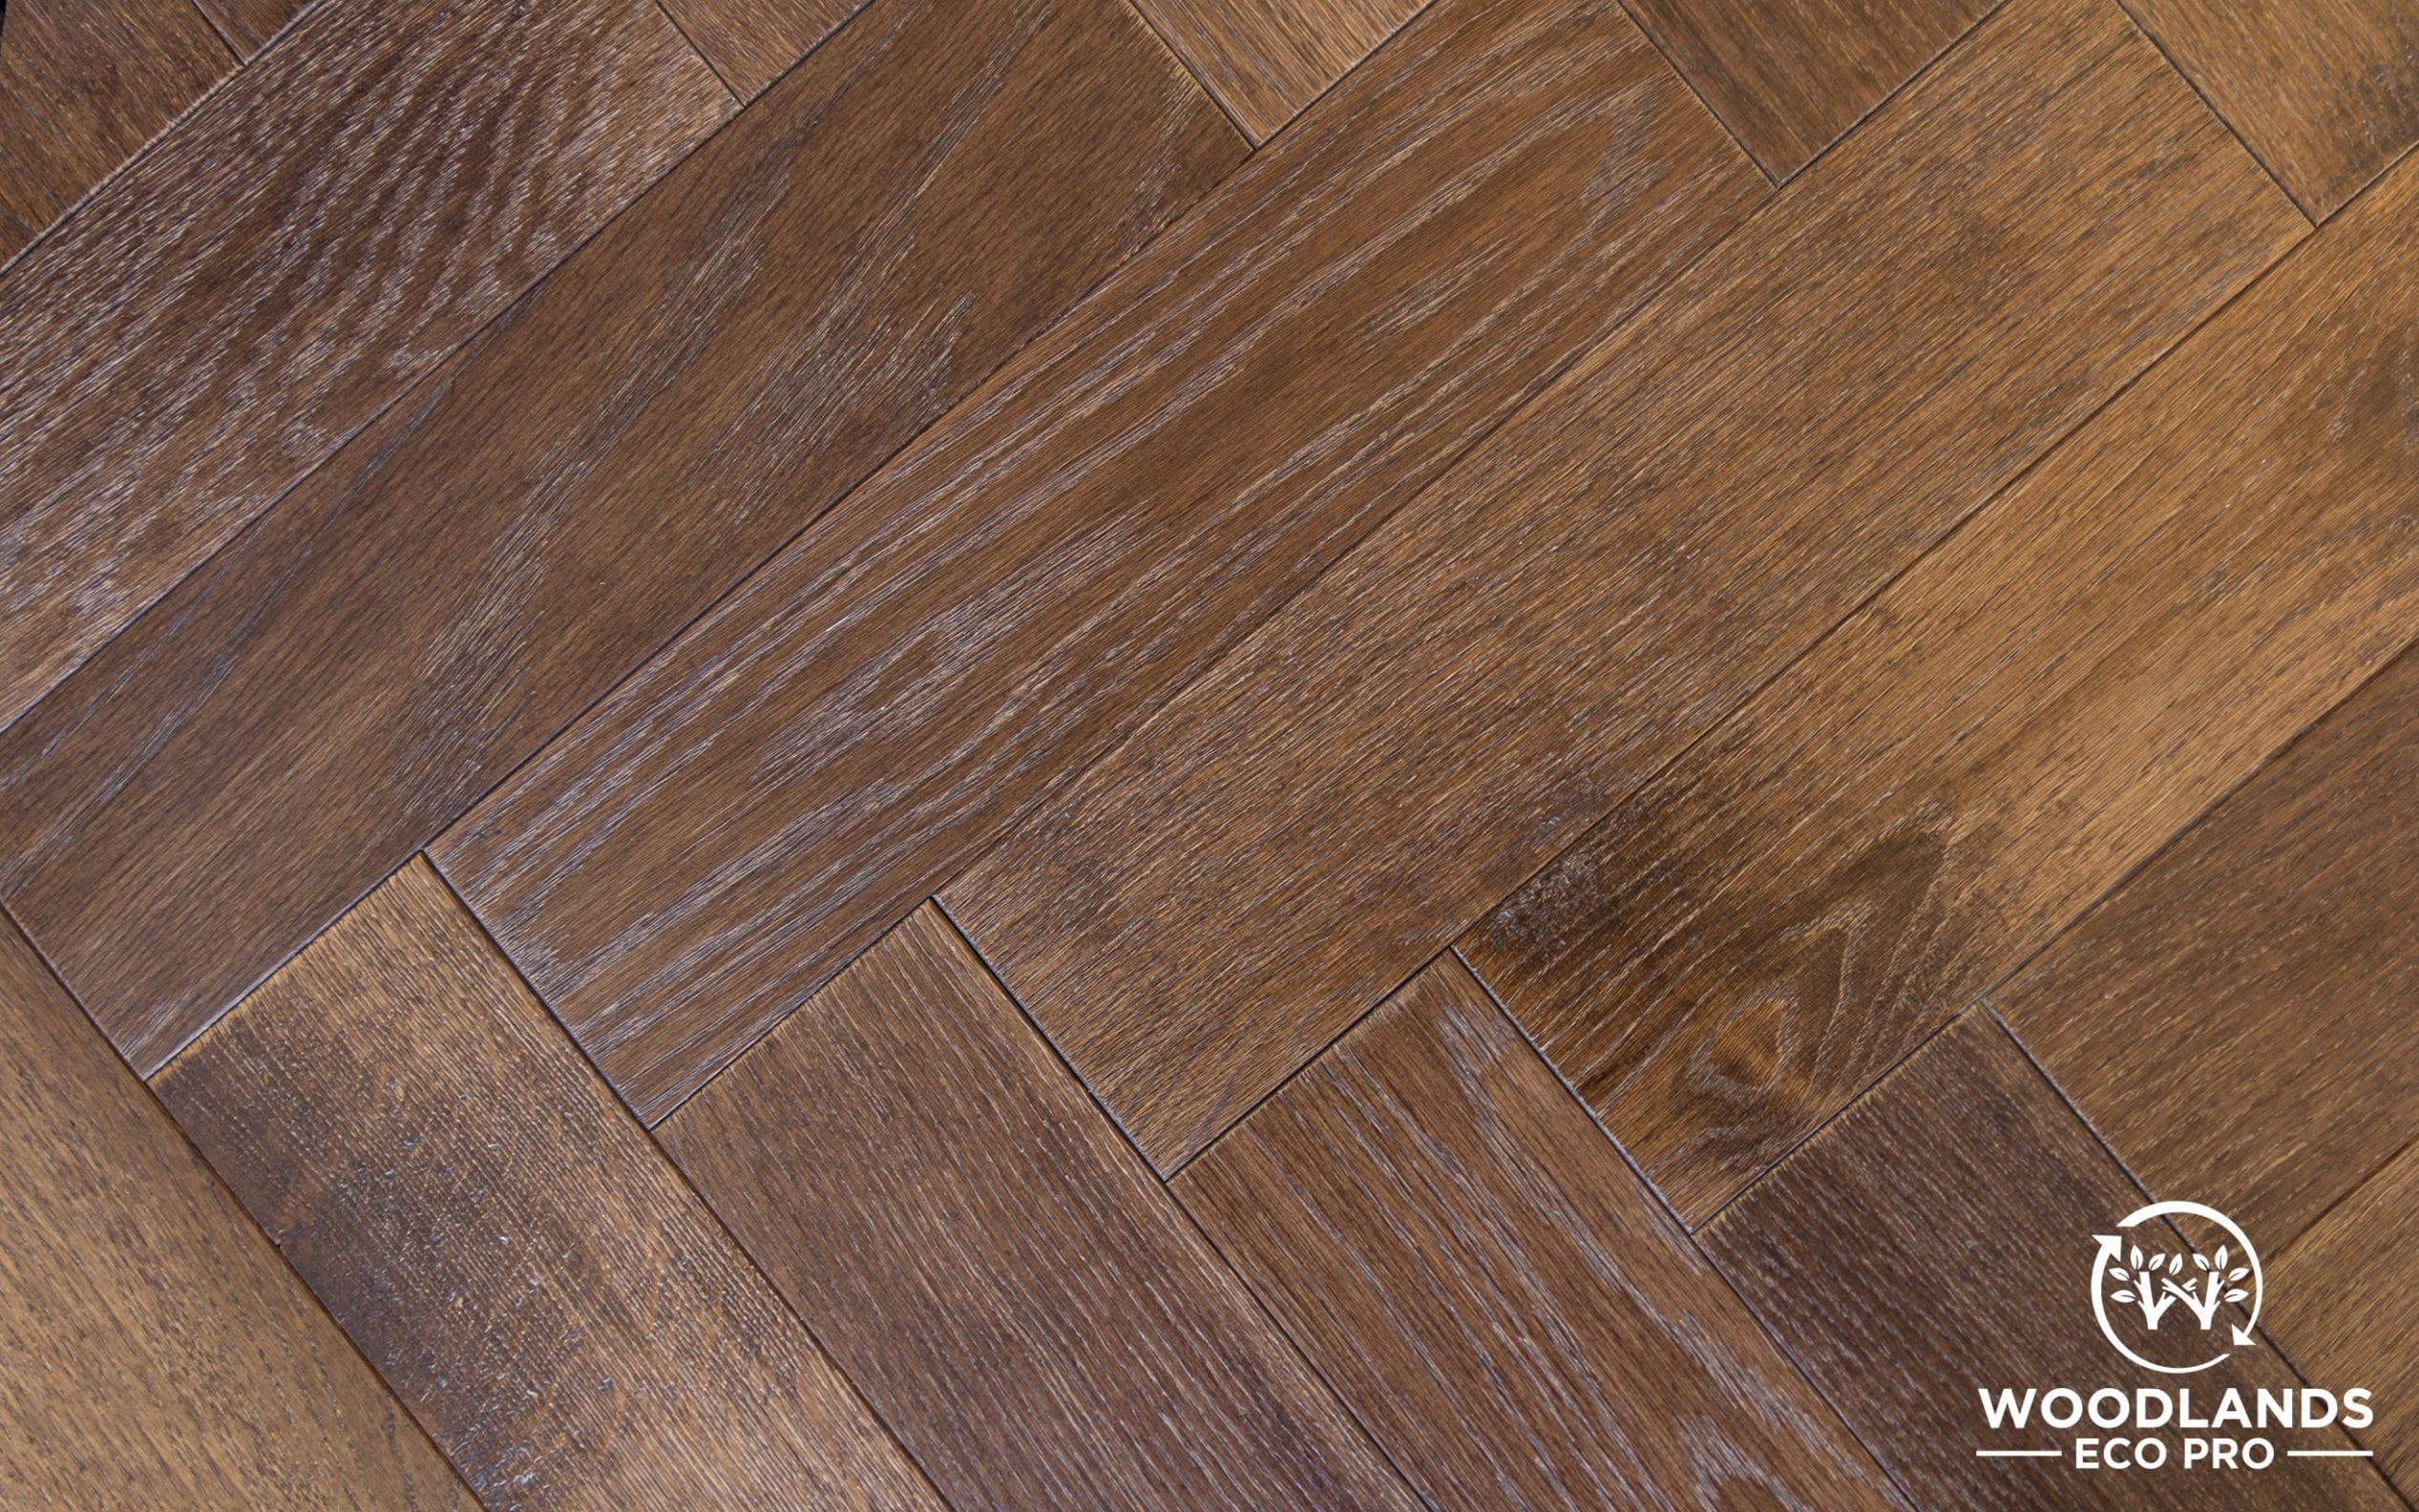 Woodlands Eco Pro Cappuccino Oak Parquet